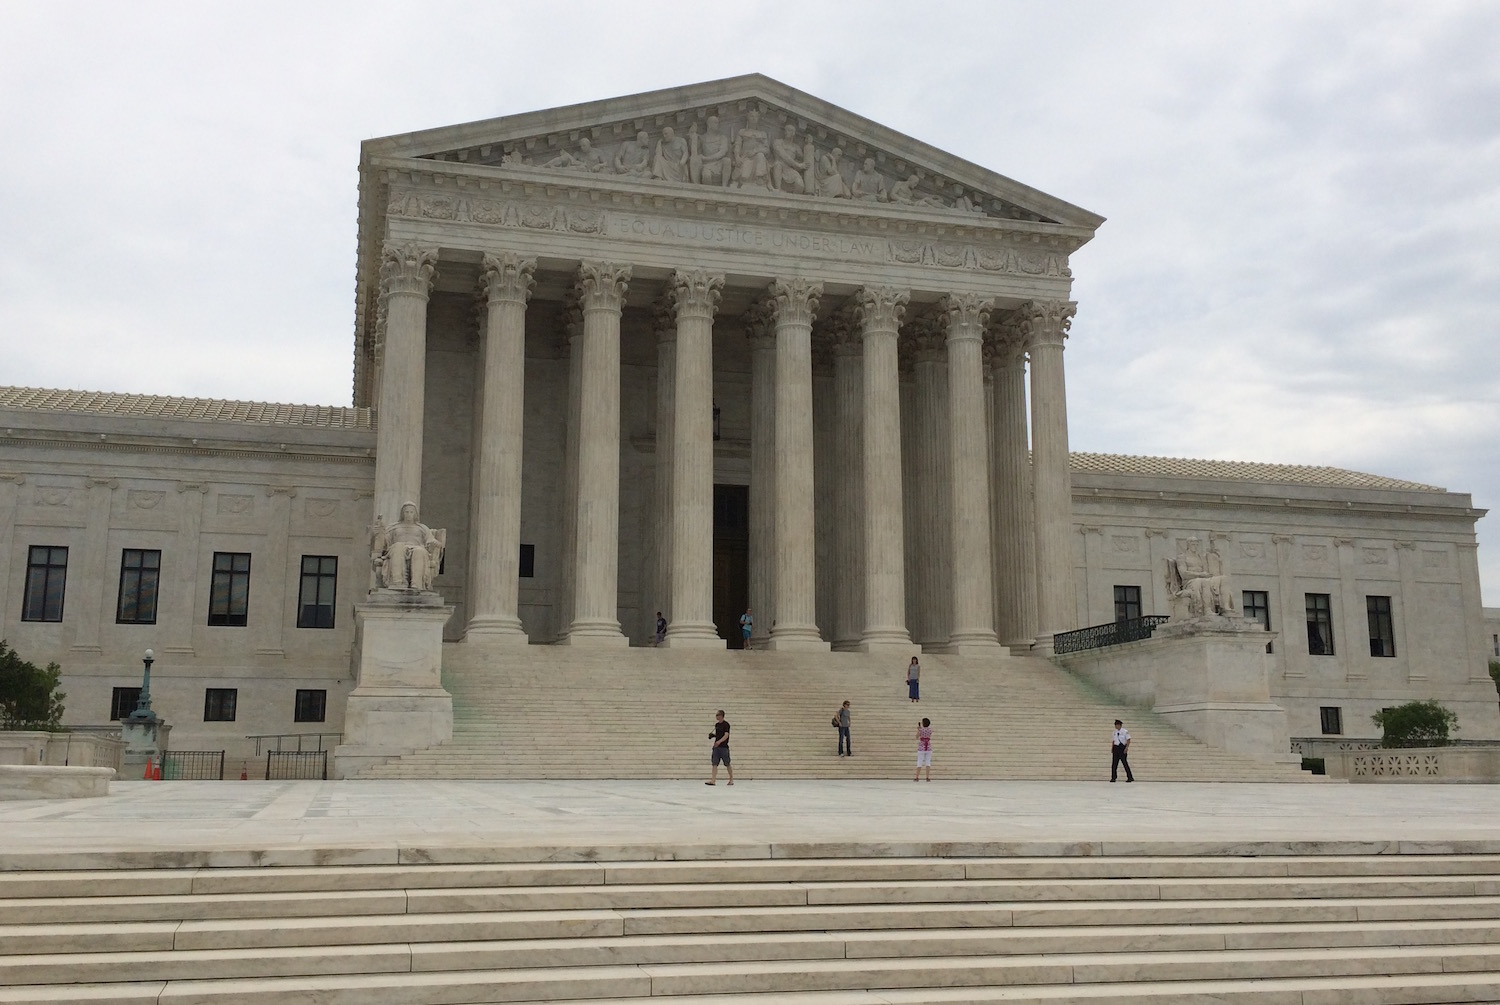 Supreme Court posts audio from hearing in domestic violence case